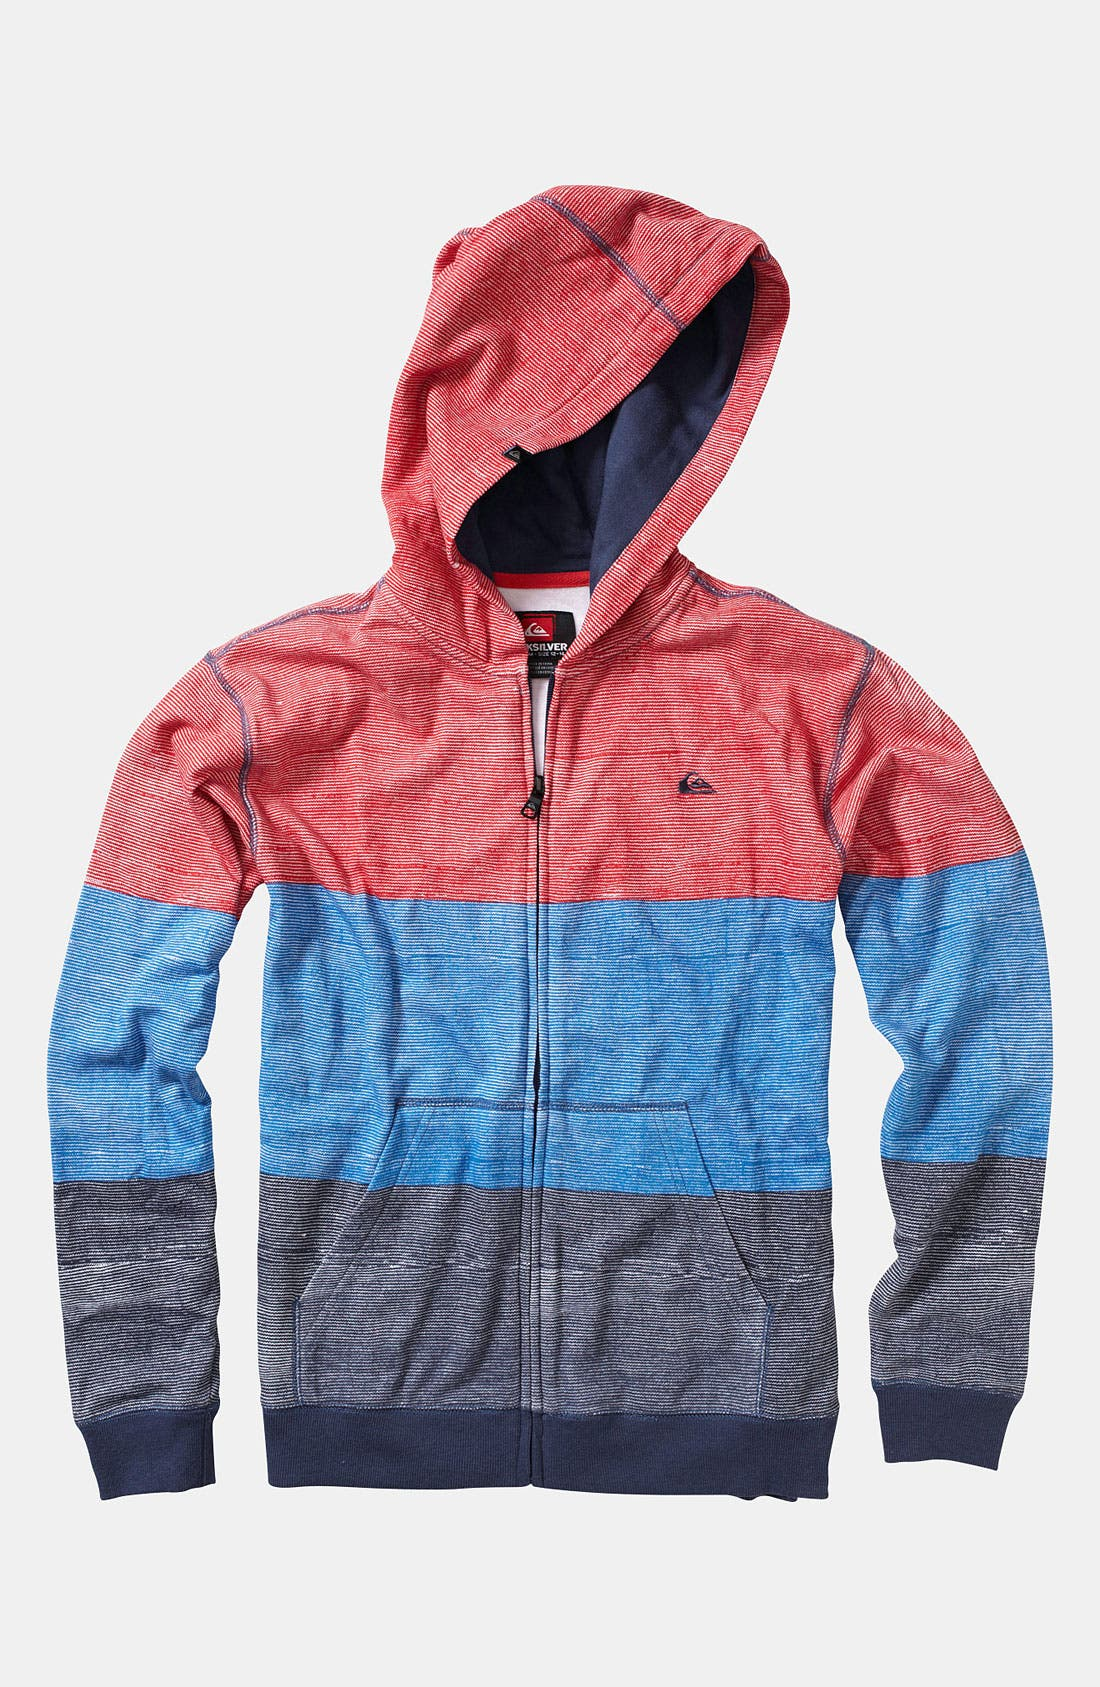 Alternate Image 1 Selected - Quiksilver 'Suave' Zip Hoodie (Infant)